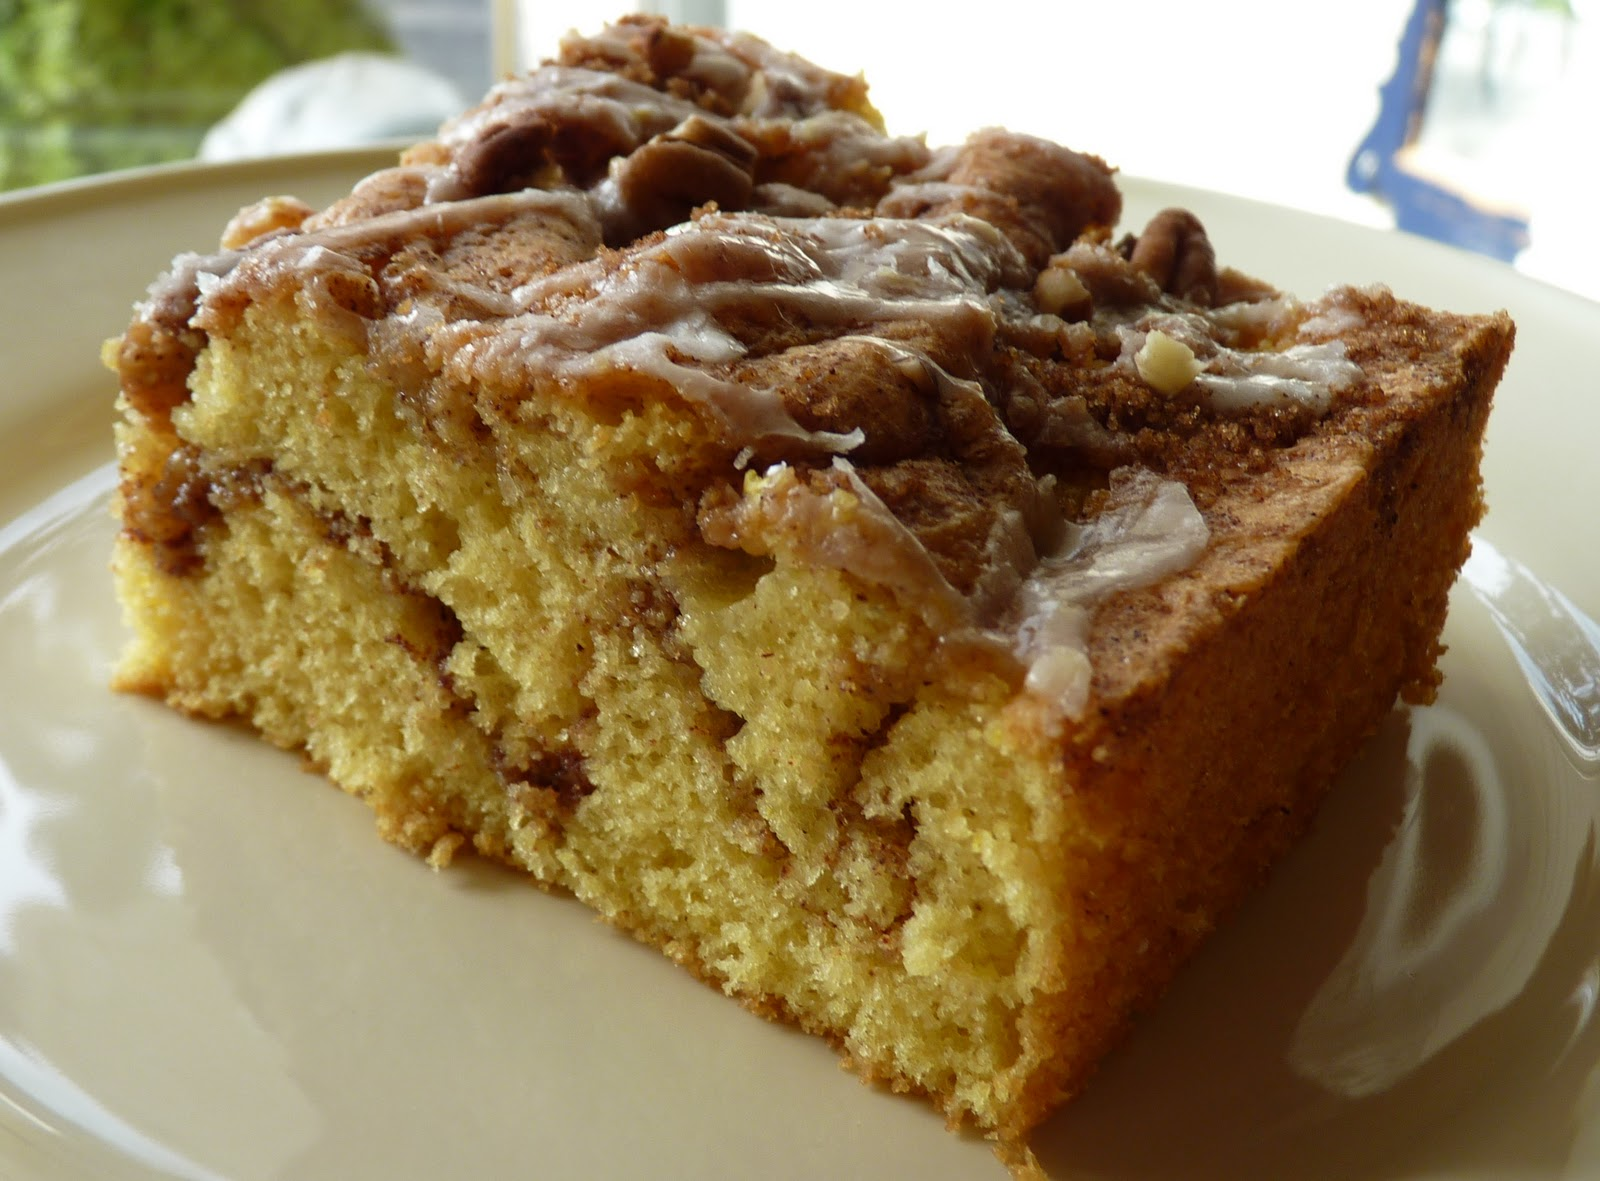 Healthy recipes using yellow cake mix